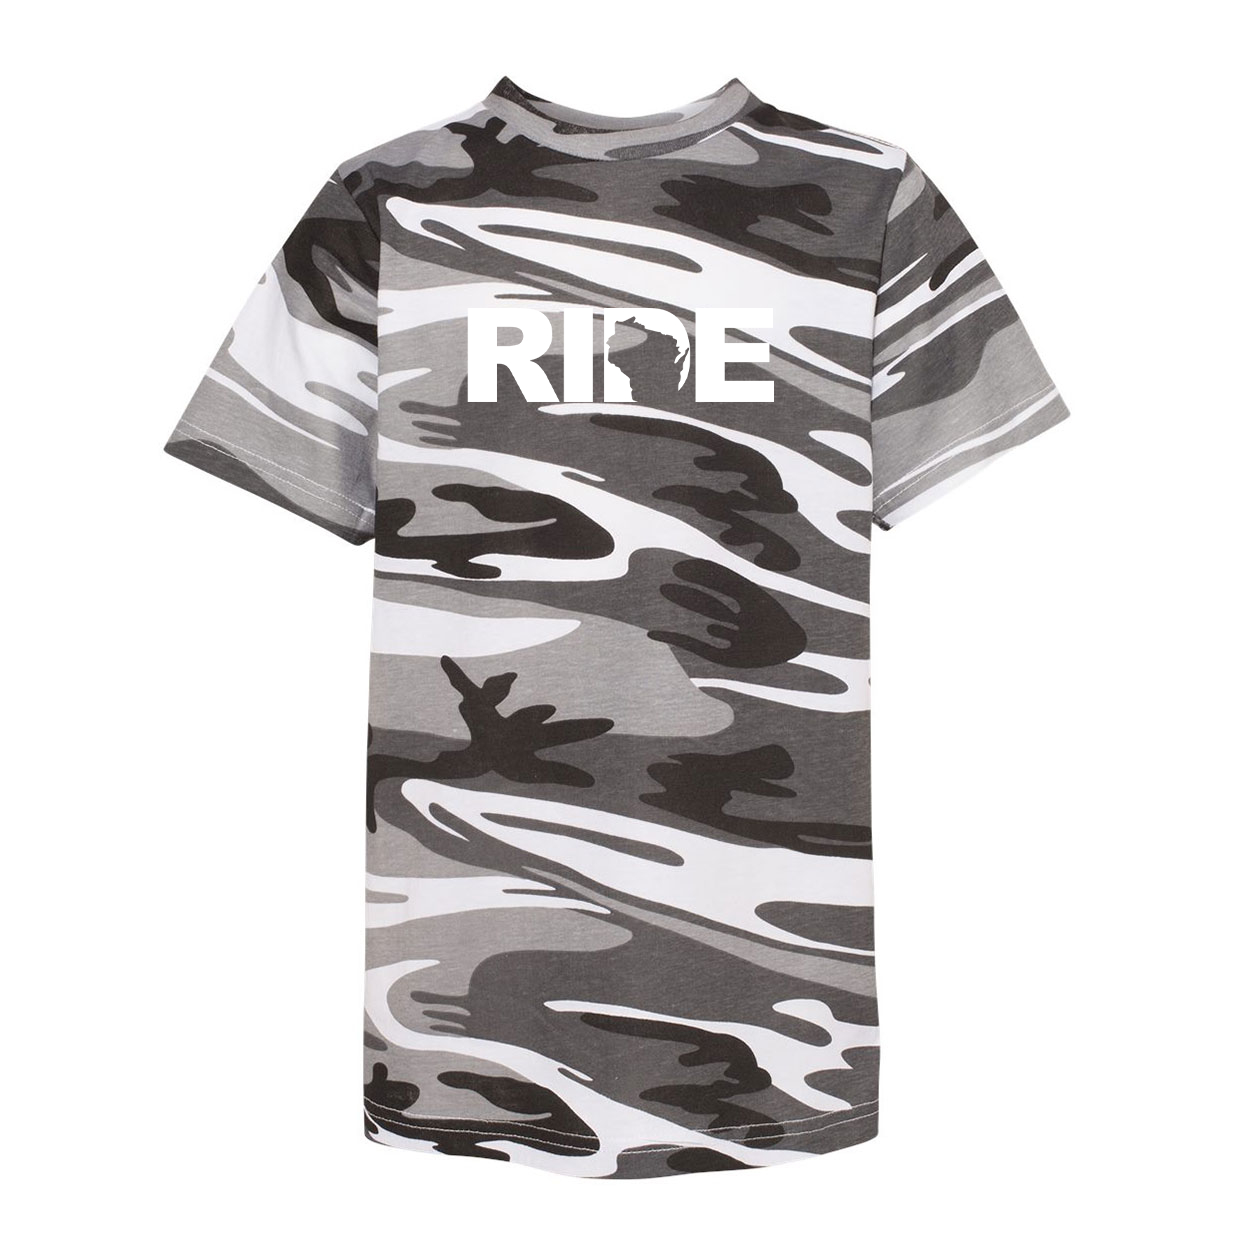 Ride Wisconsin Classic Youth Unisex T-Shirt Urban Camo (White Logo)